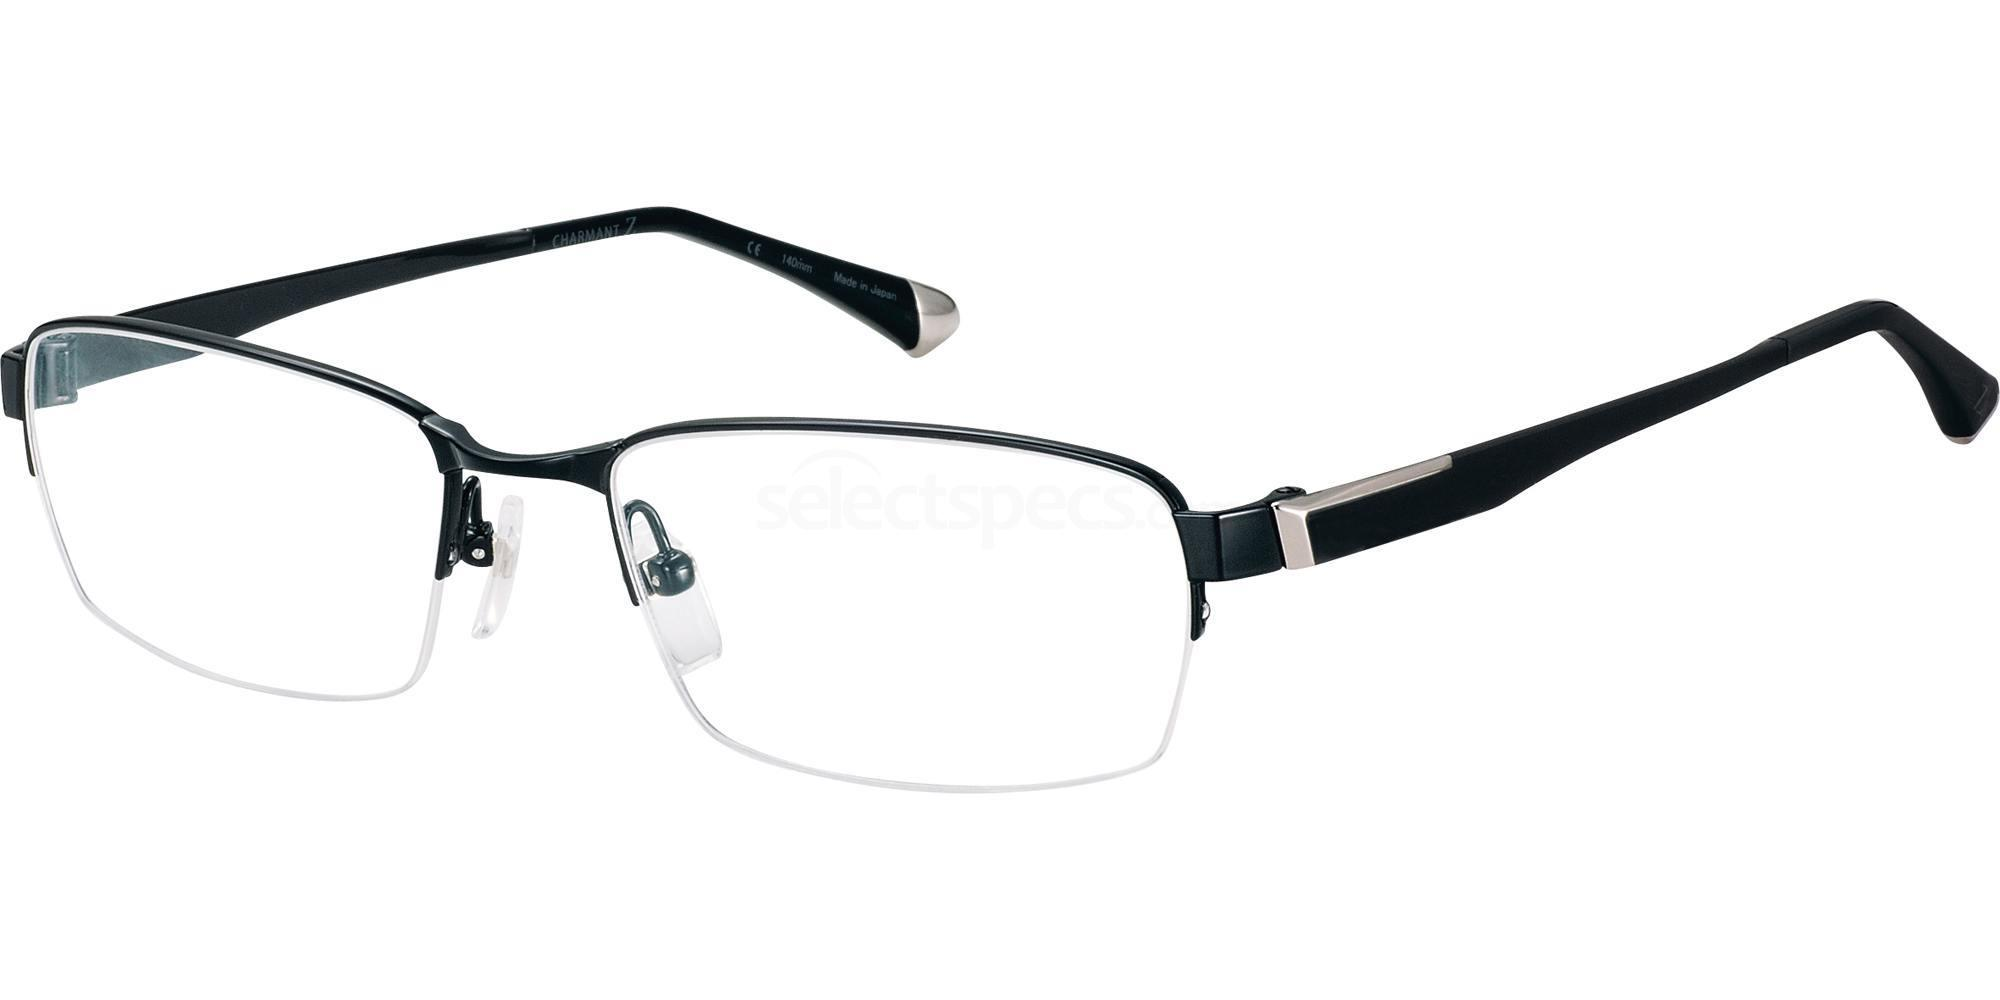 BK ZT19813 Glasses, Charmant Z